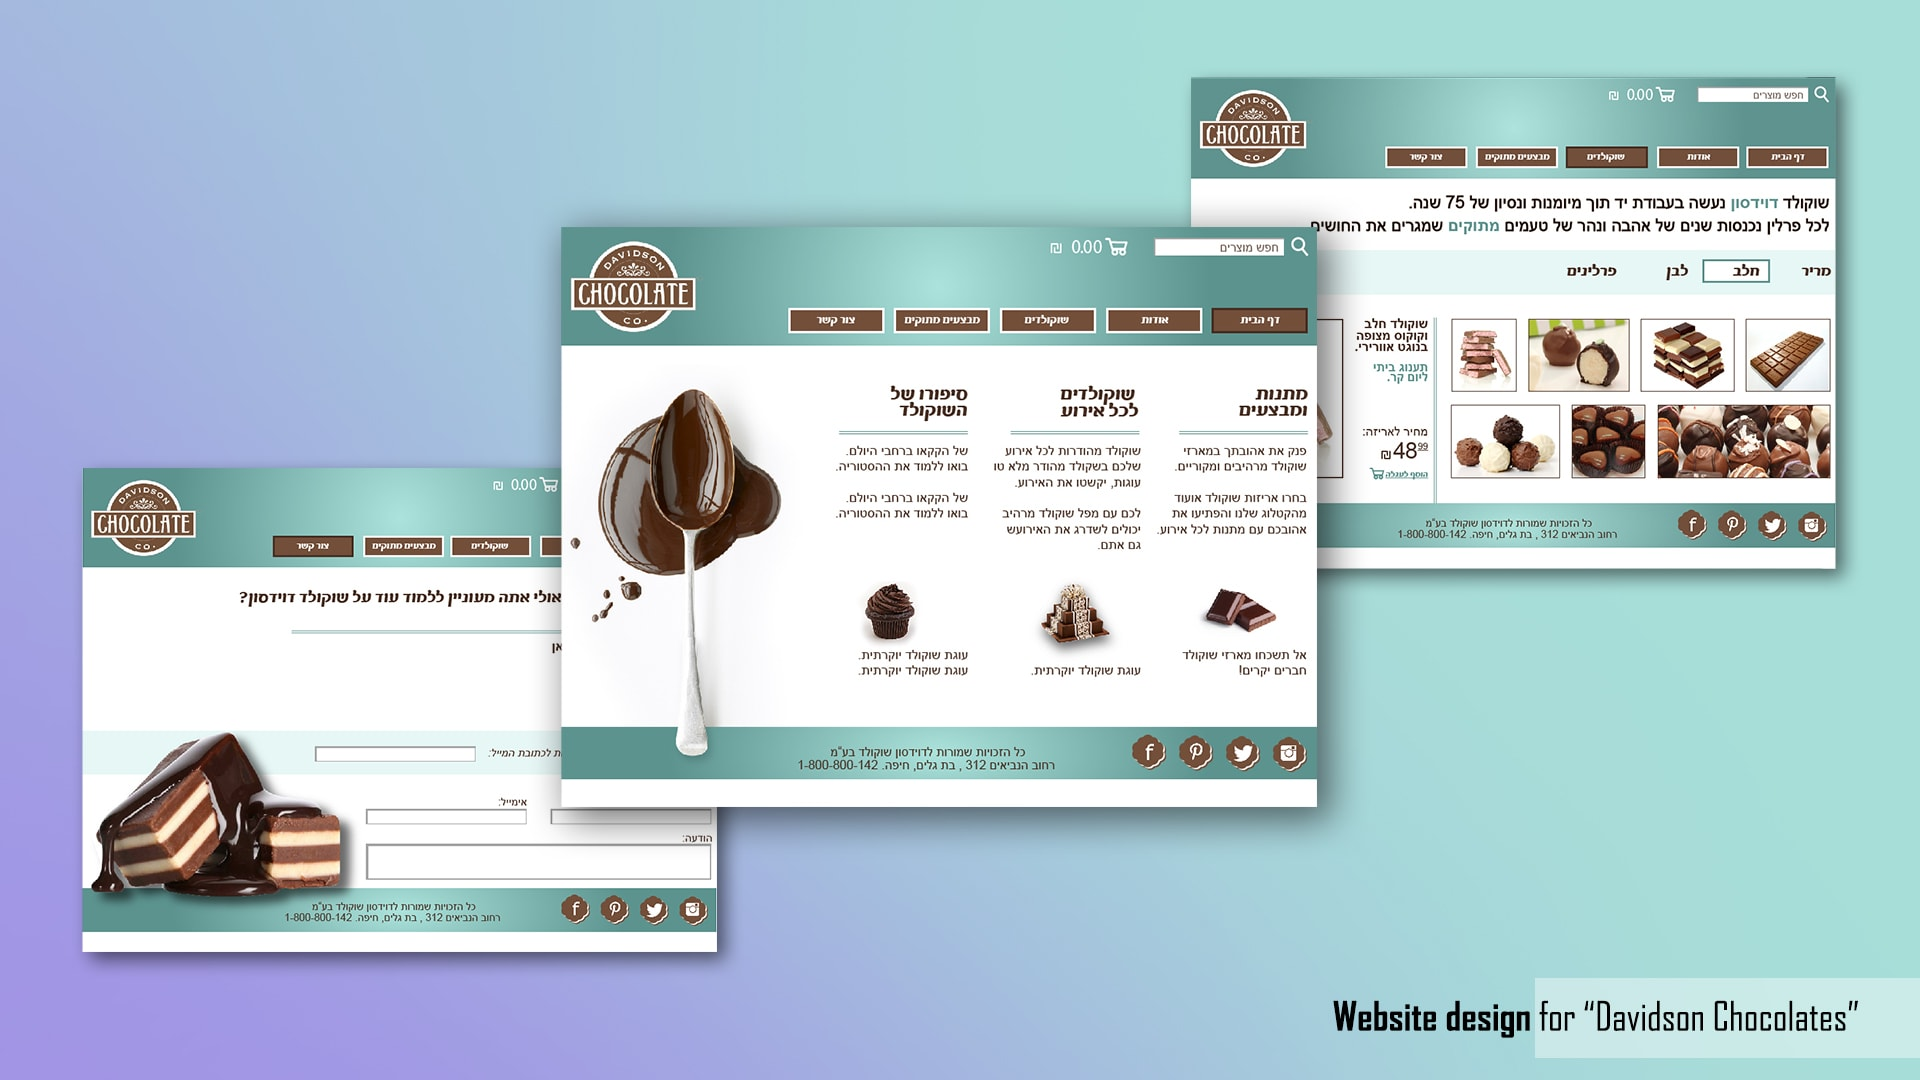 Website design - Davidson Chocolates